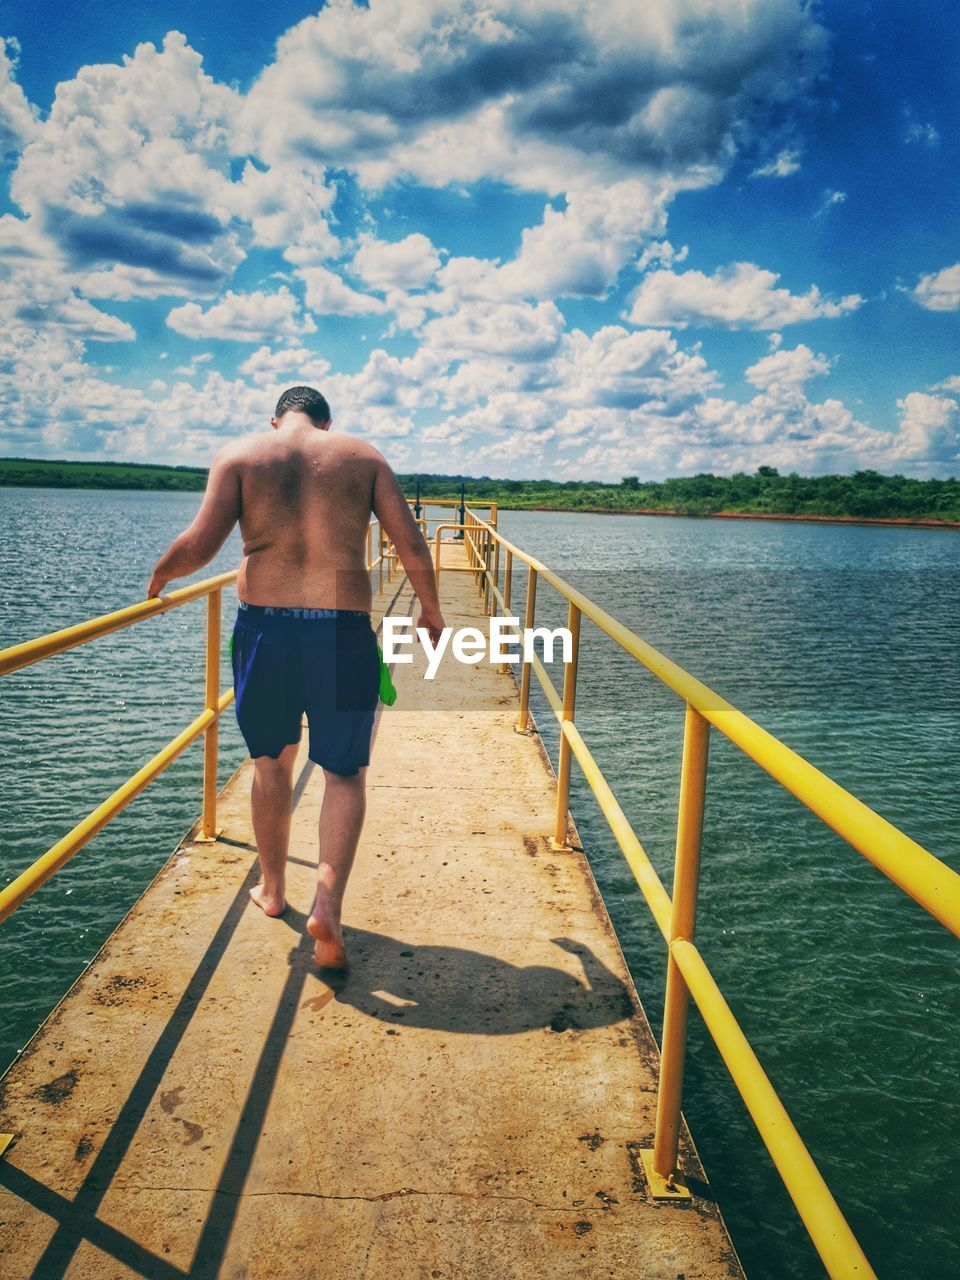 water, cloud - sky, railing, sky, one person, rear view, full length, real people, nature, lifestyles, sea, leisure activity, standing, day, beauty in nature, staircase, shirtless, walking, outdoors, shorts